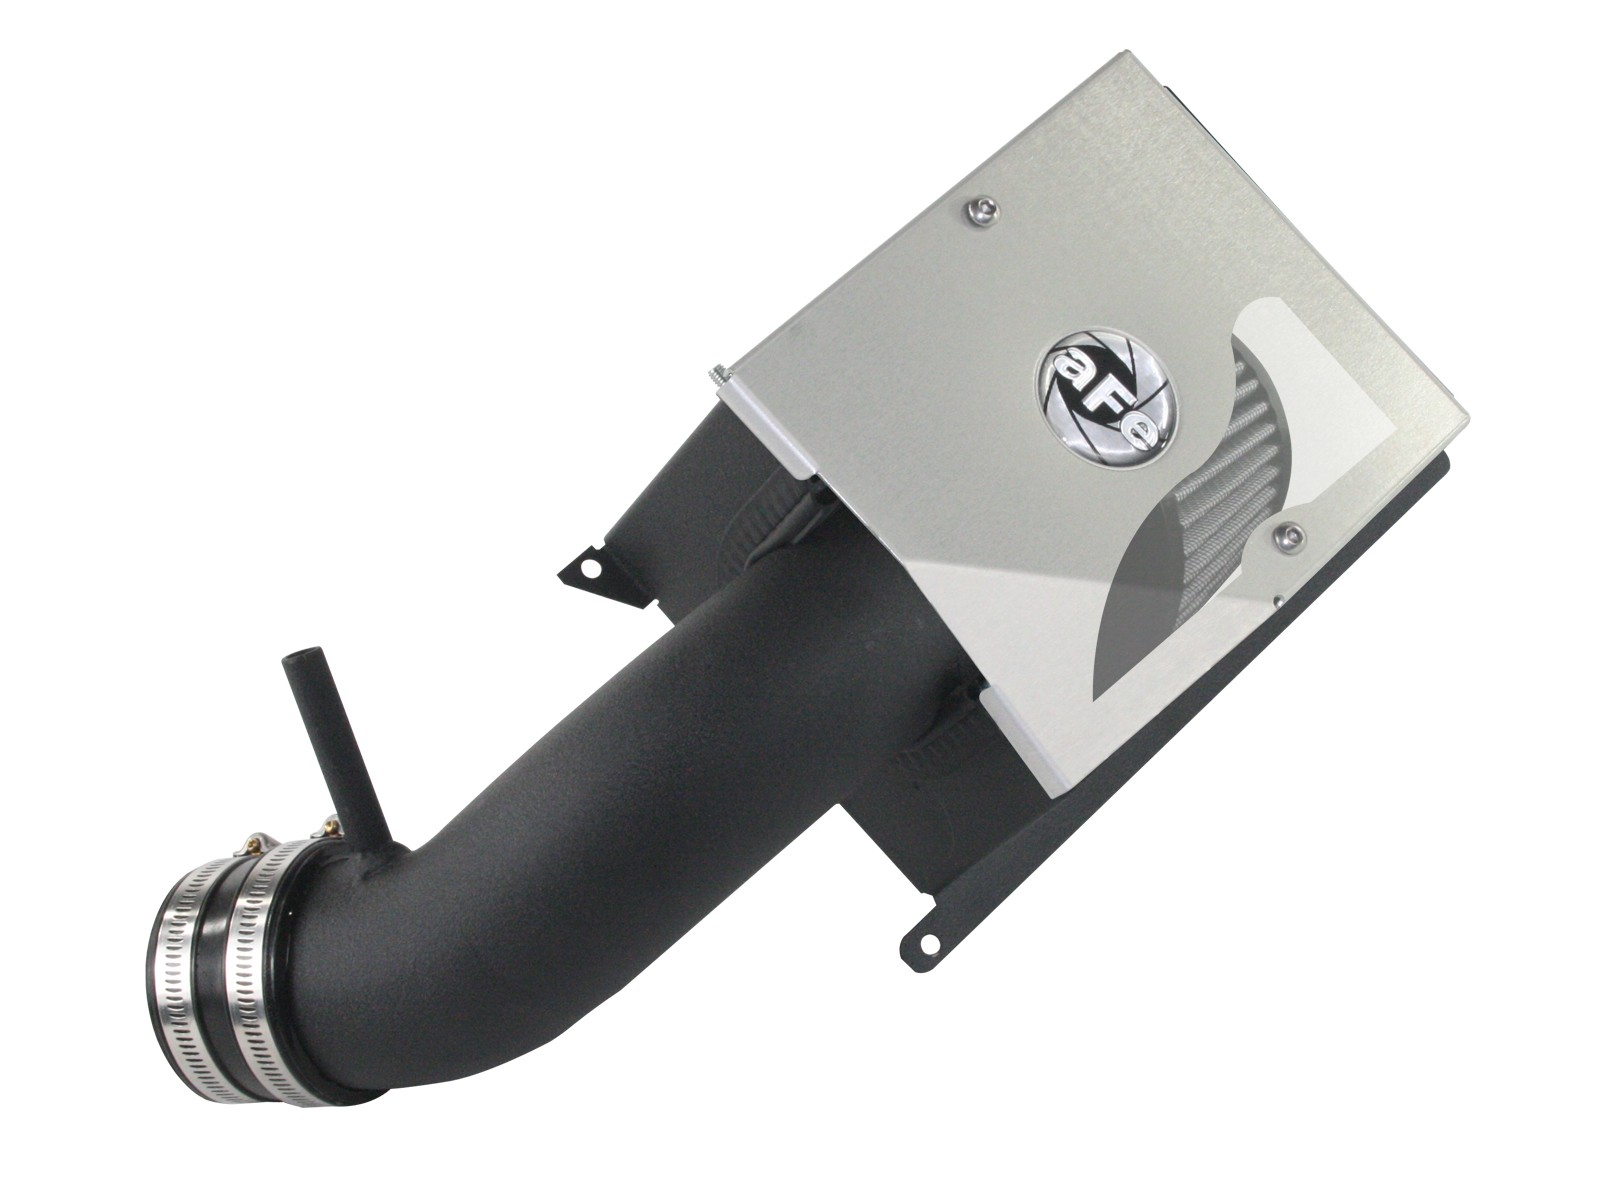 aFe POWER 51-10572-1 Magnum FORCE Stage-2 Pro DRY S Cold Air Intake System